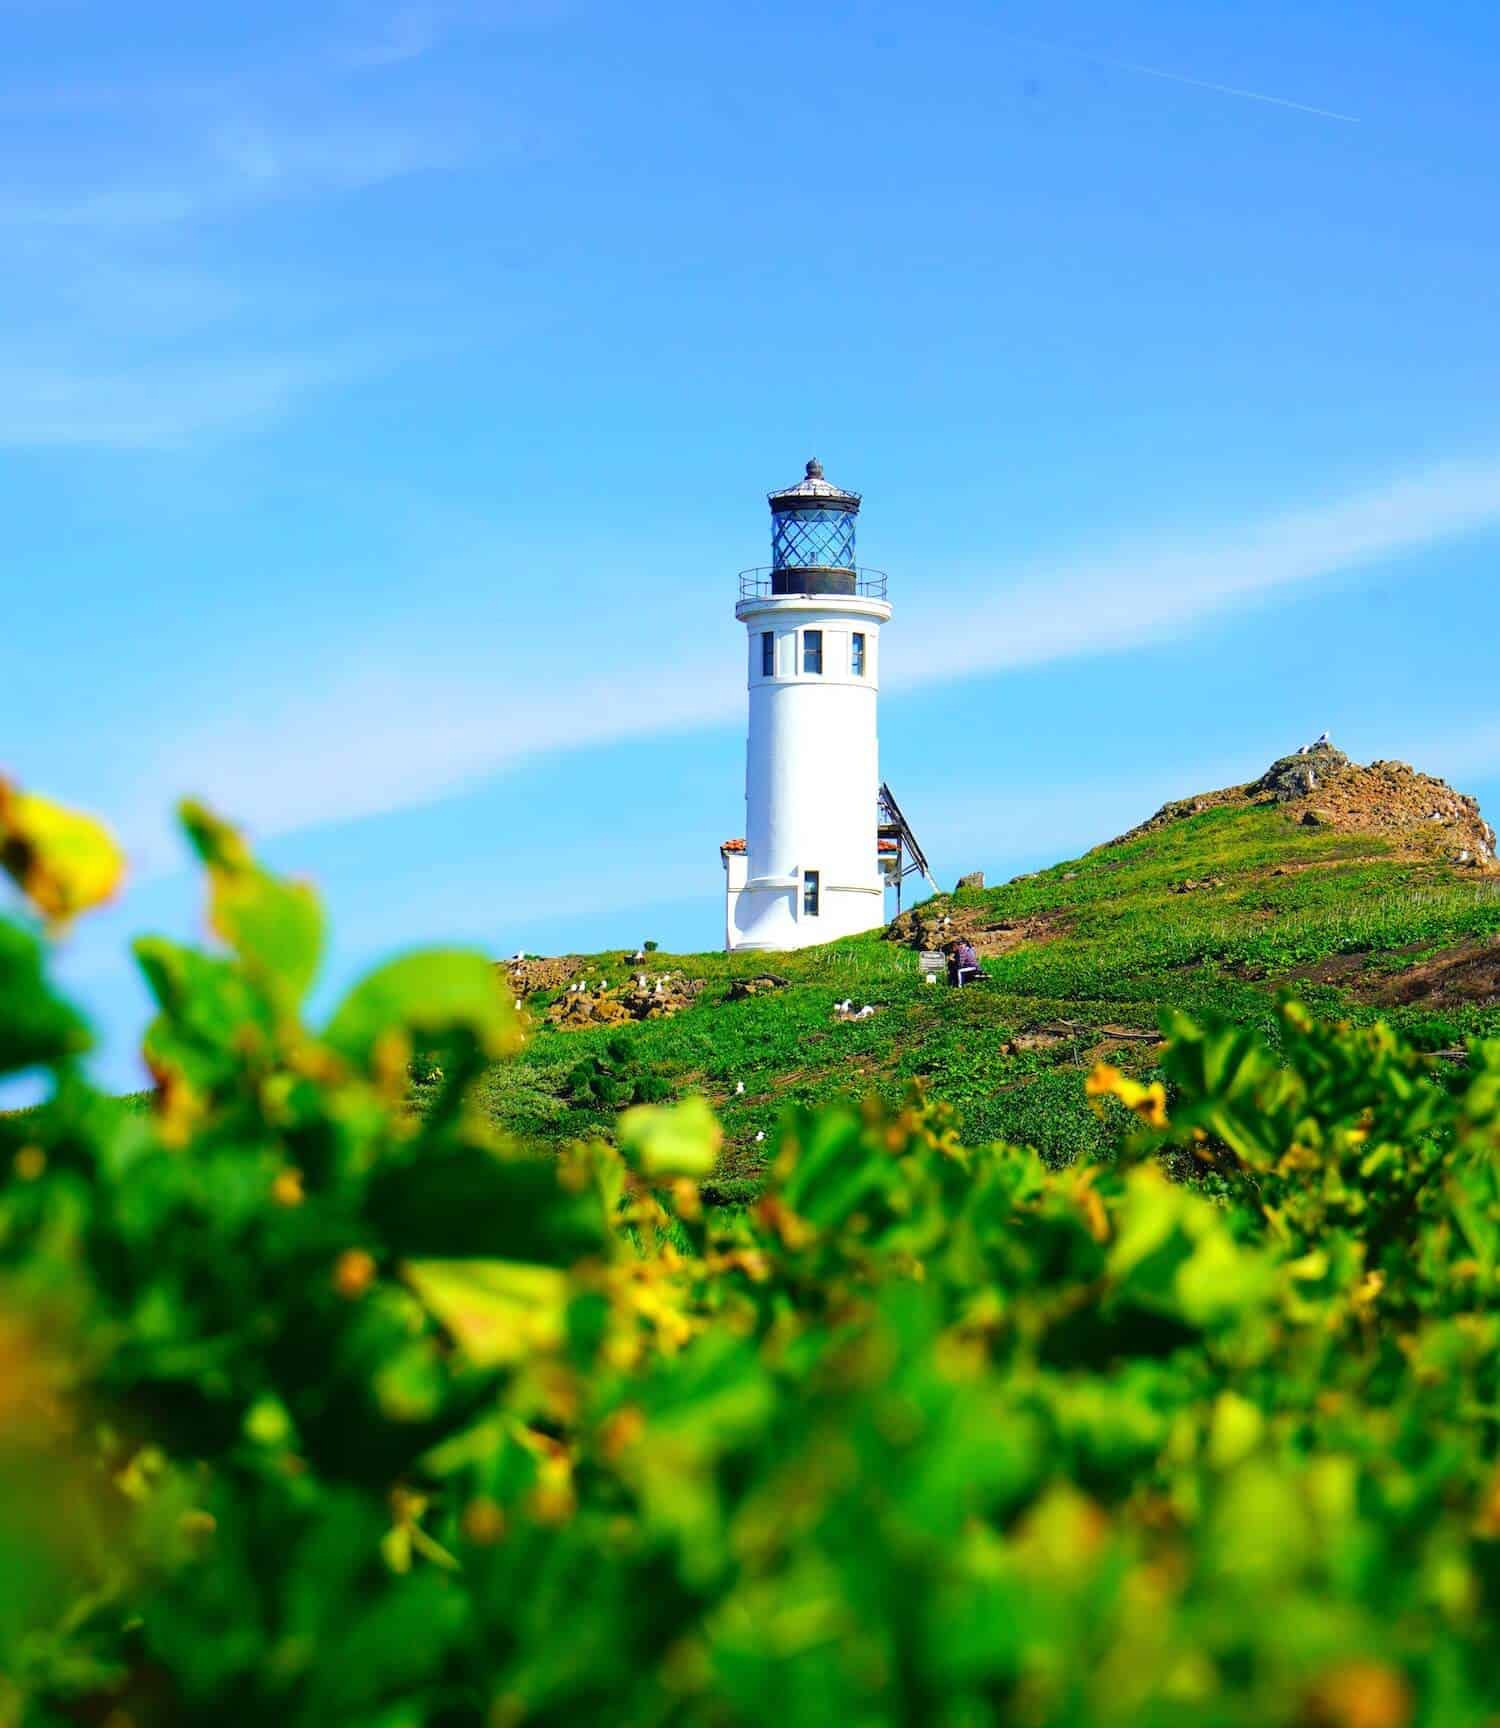 National Parks in California - Channel Islands